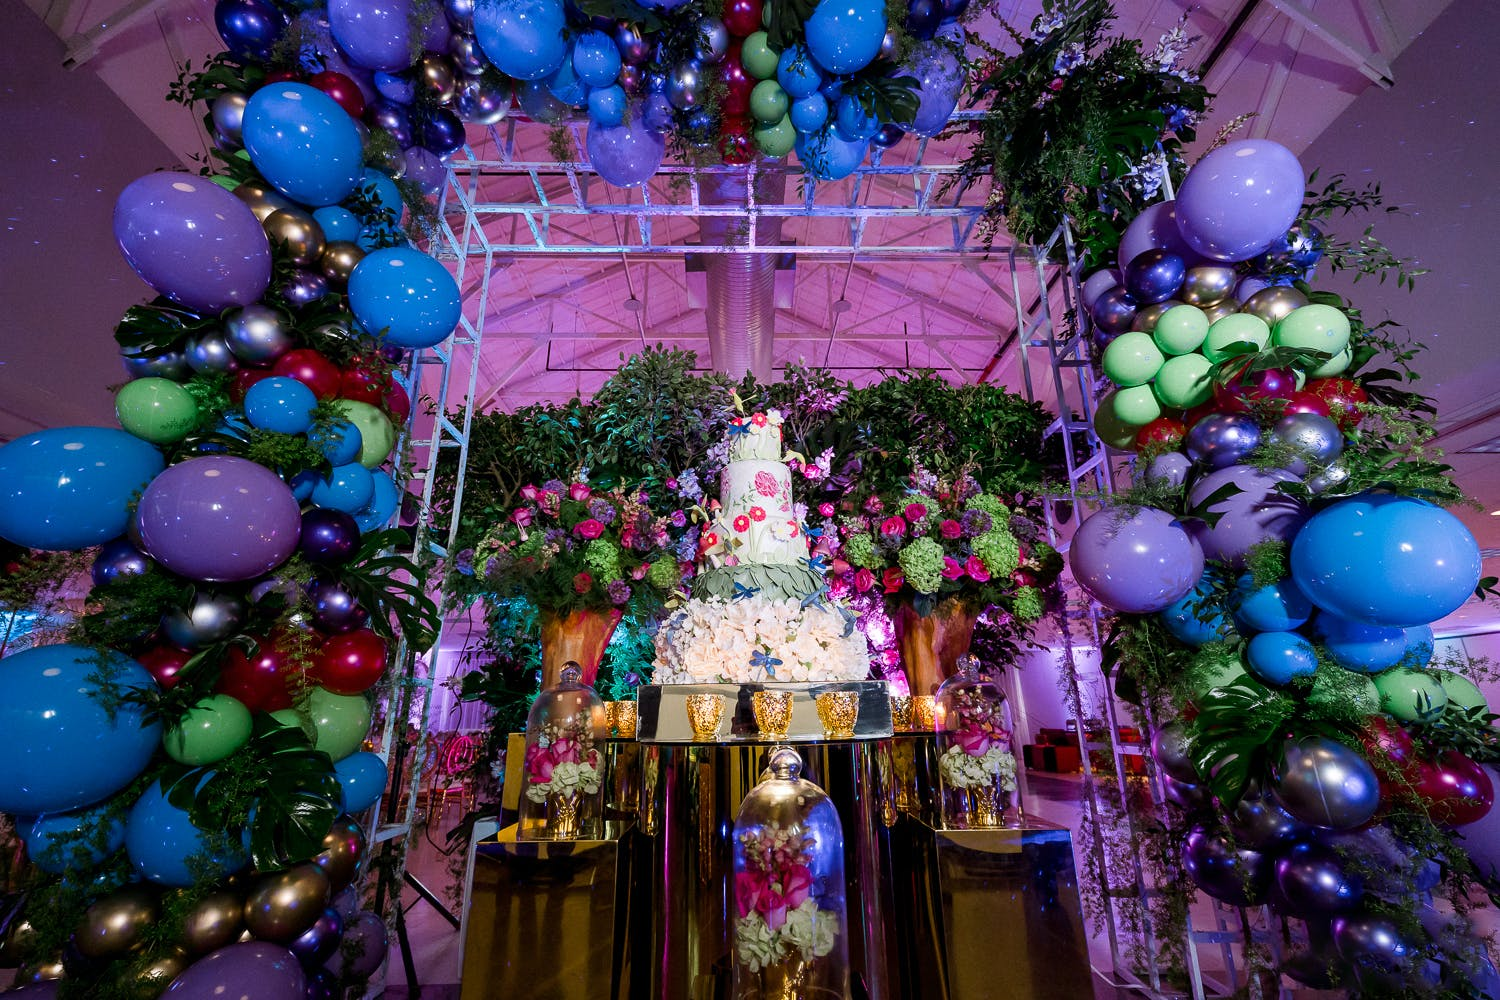 Jewel-Toned Garden Cake and Balloon Arch for Colorful Quinceañera | PartySlate